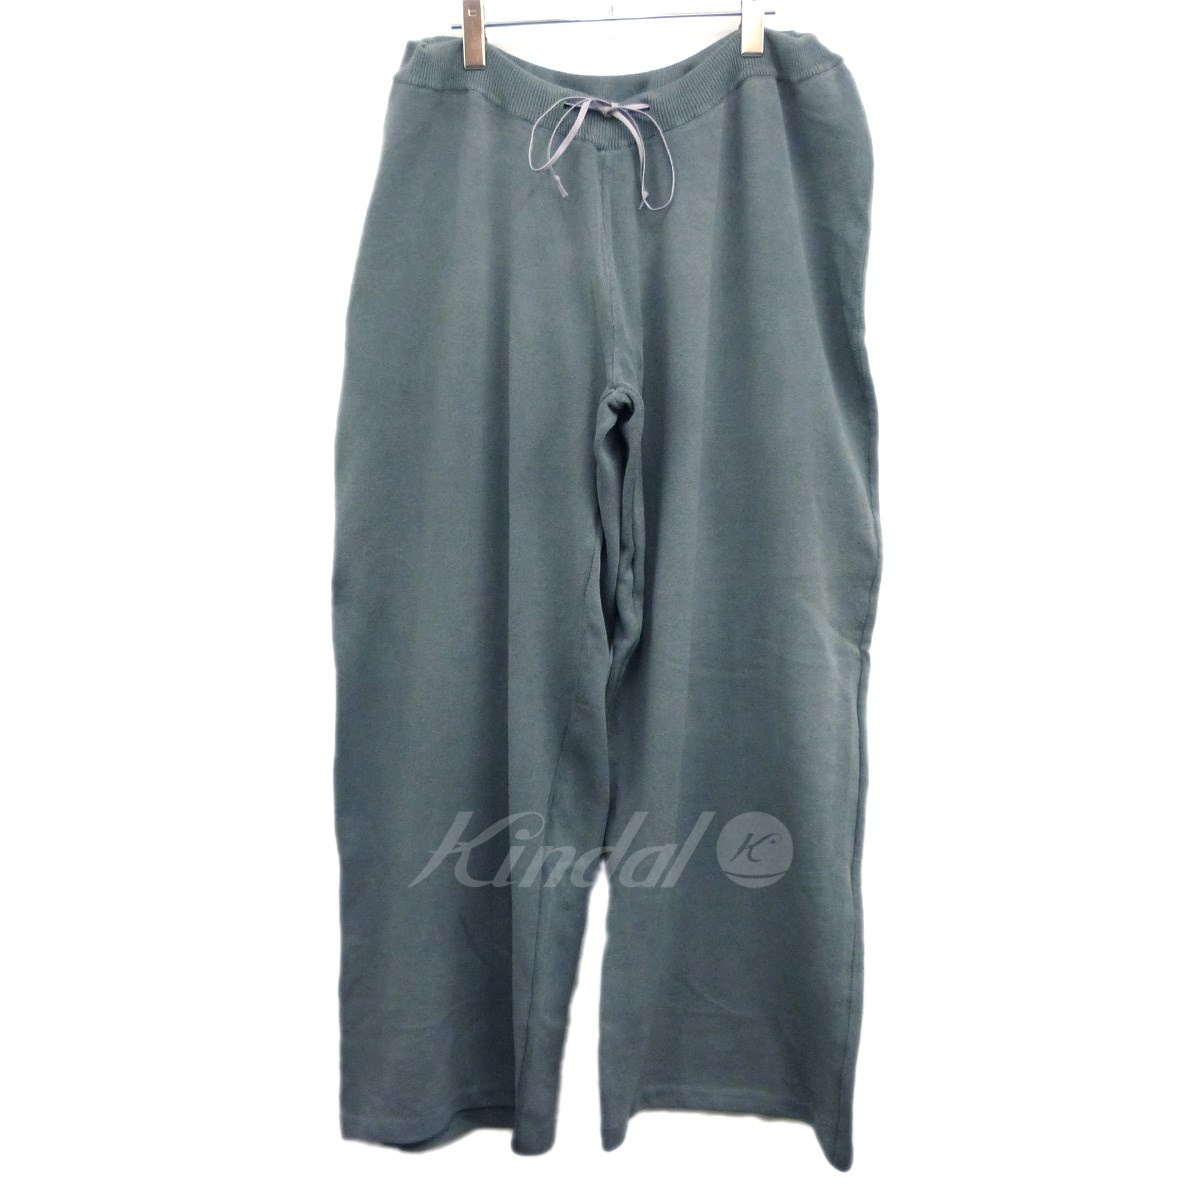 【中古】MAISON EUREKA 18AW「LINED CORD EASY KNIT PANTS」ワイドイージーニットパンツ 【送料無料】 【142488】 【KIND1550】